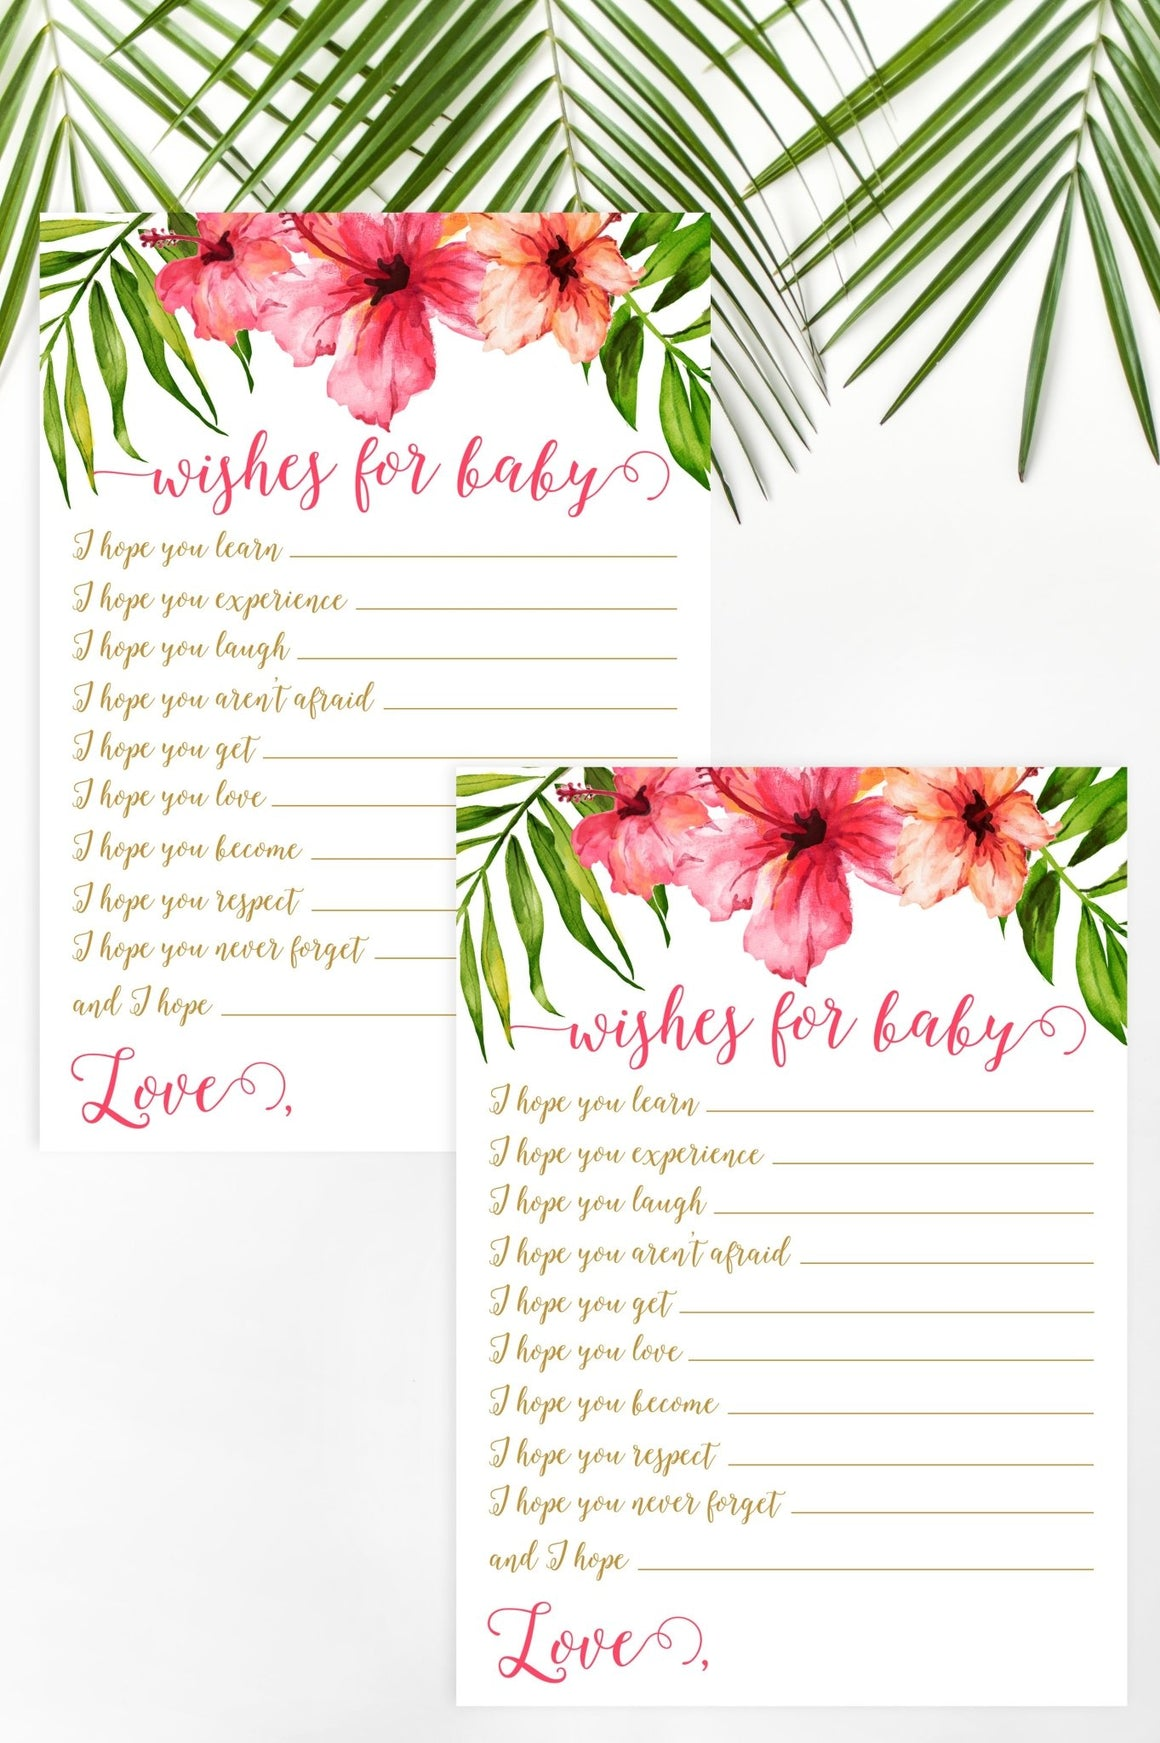 Wishes for Baby - Tropical Floral Printable - Pretty Collected